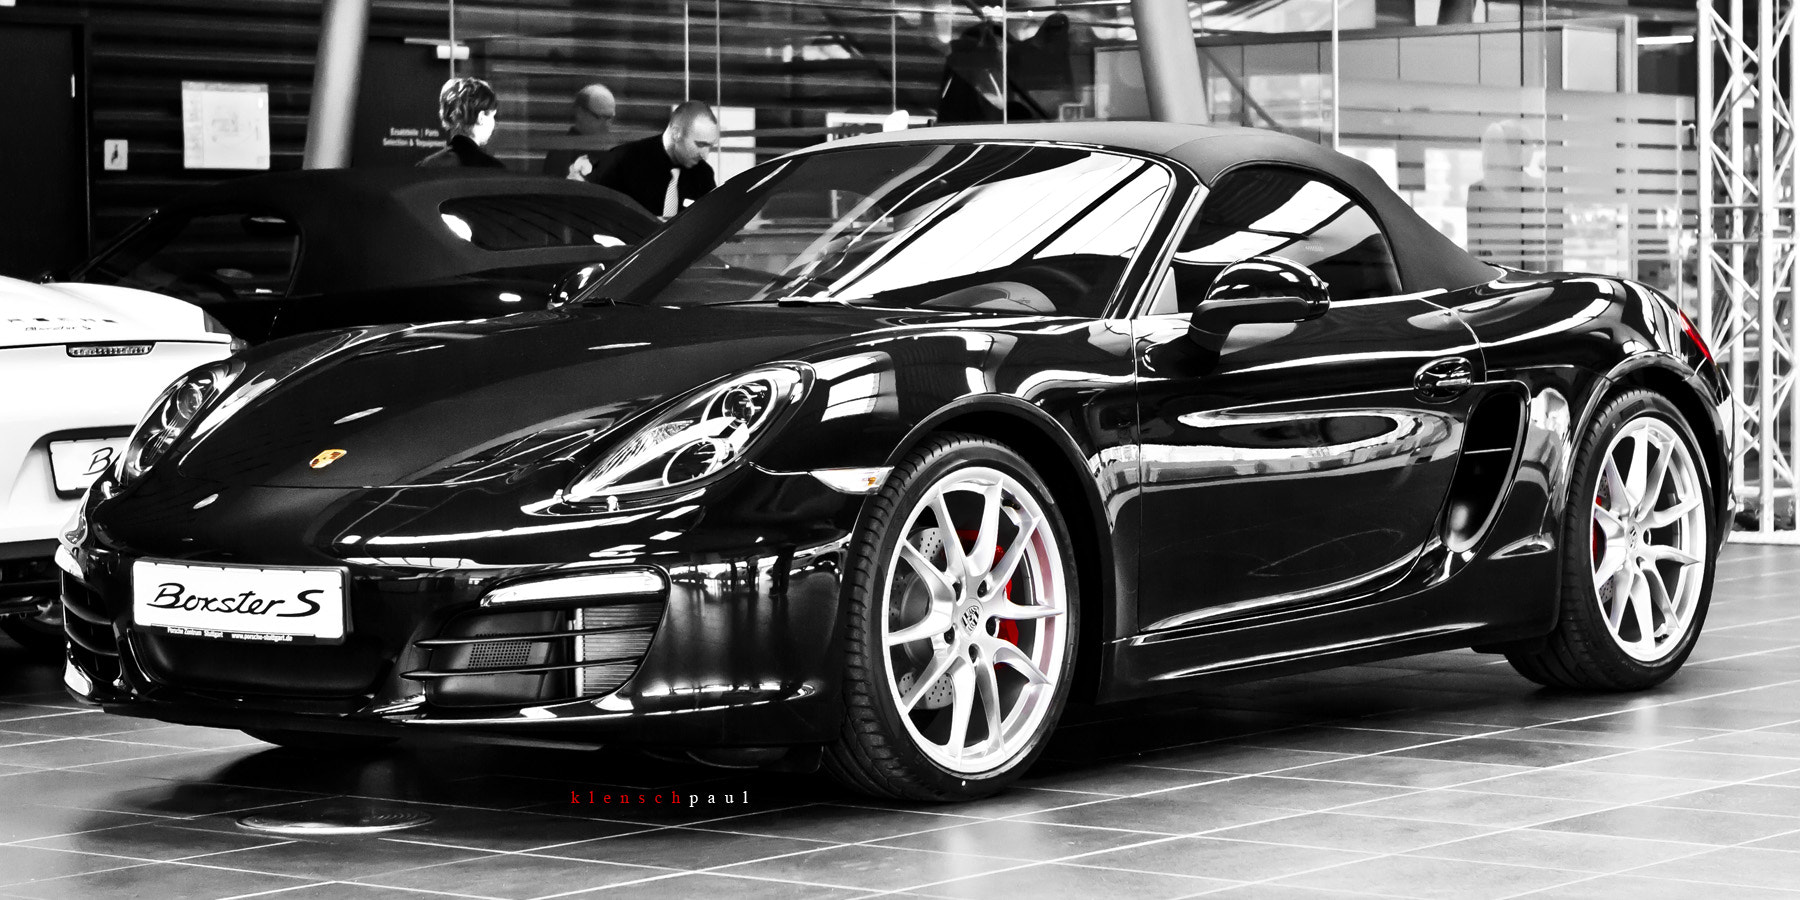 Photograph Porsche 981 by Paul Klensch on 500px